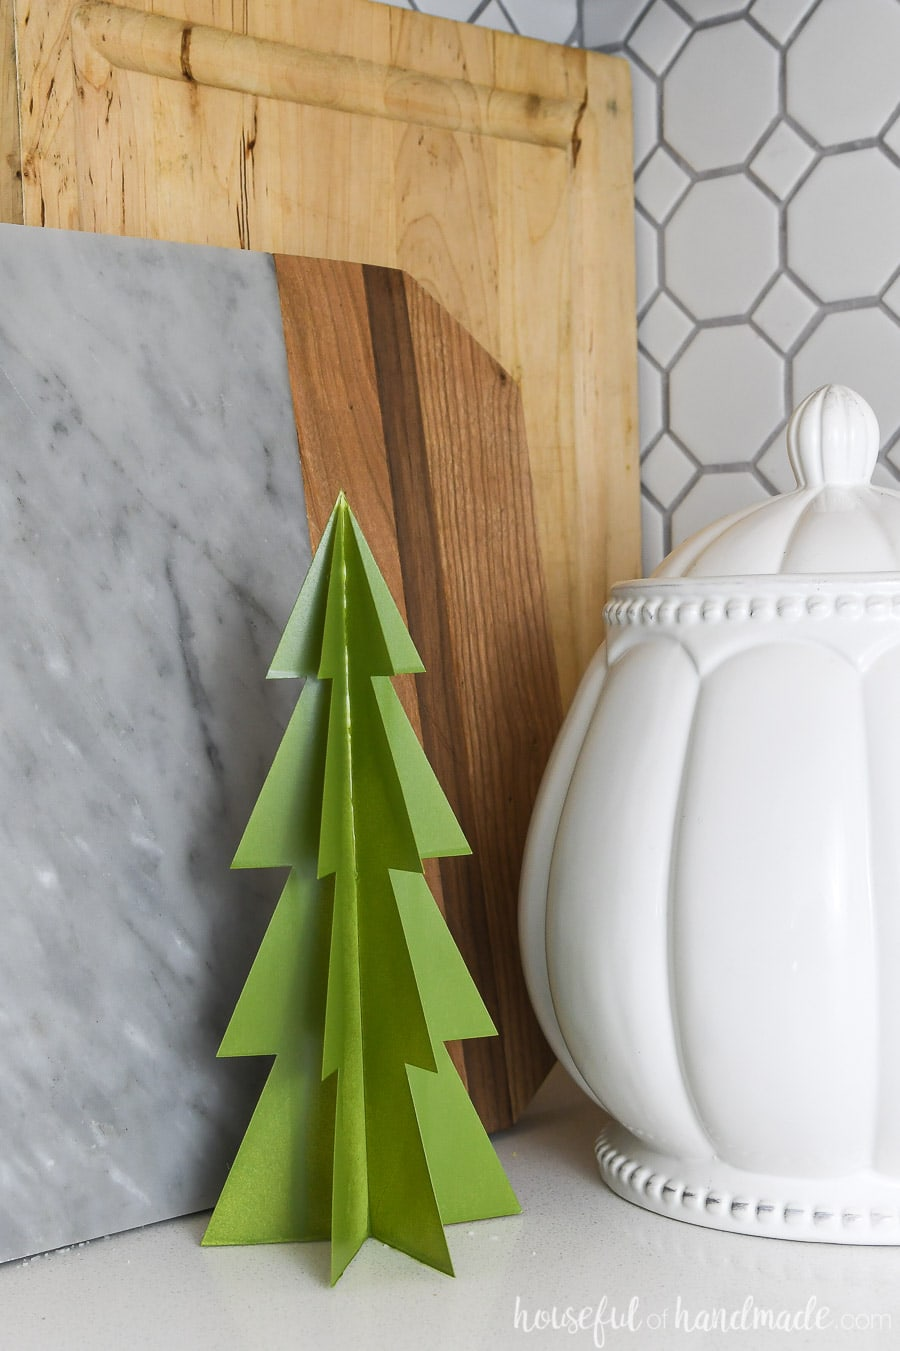 Green paper Christmas tree decor on the counter in the kitchen.